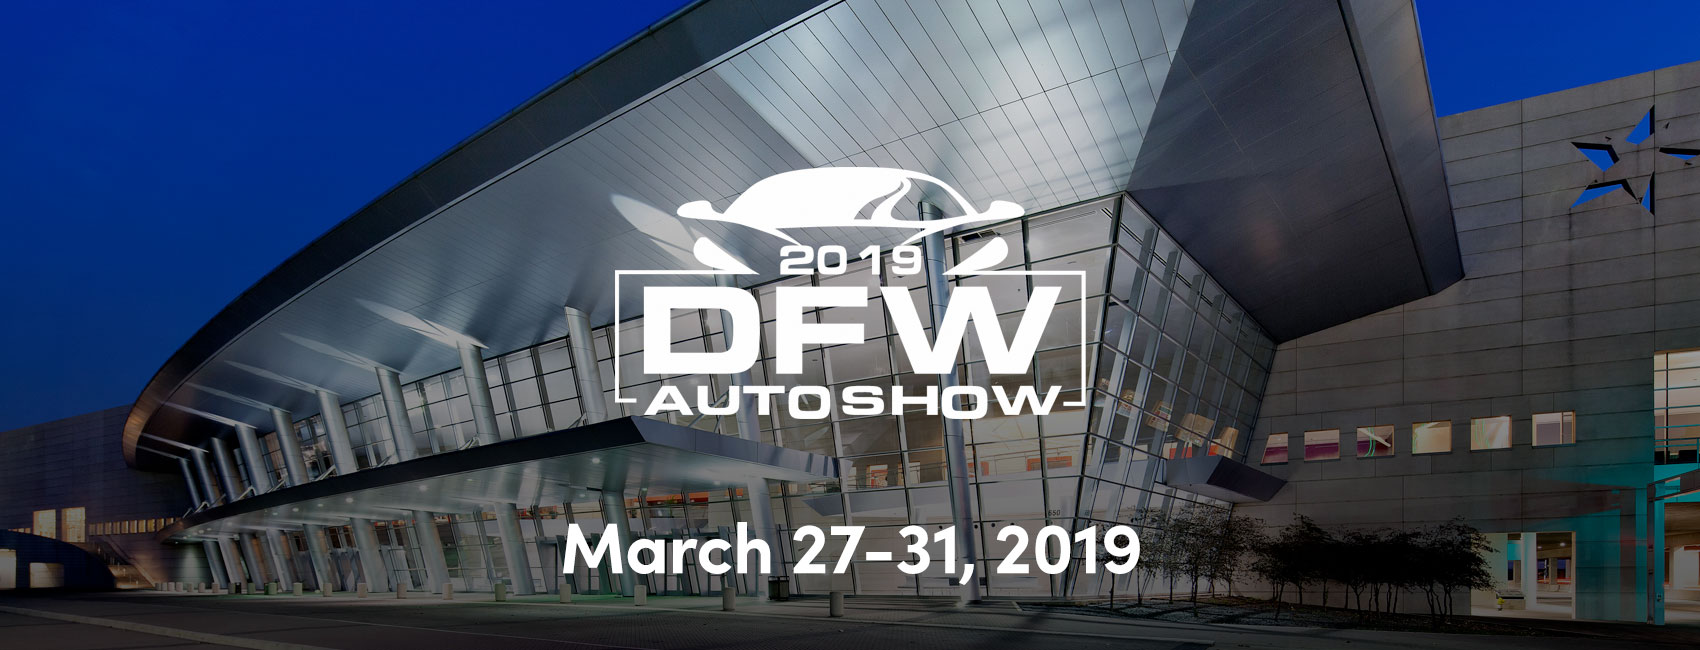 Dallas Auto Show >> Tickets For The 2019 Dfw Auto Show In Dallas From Showclix